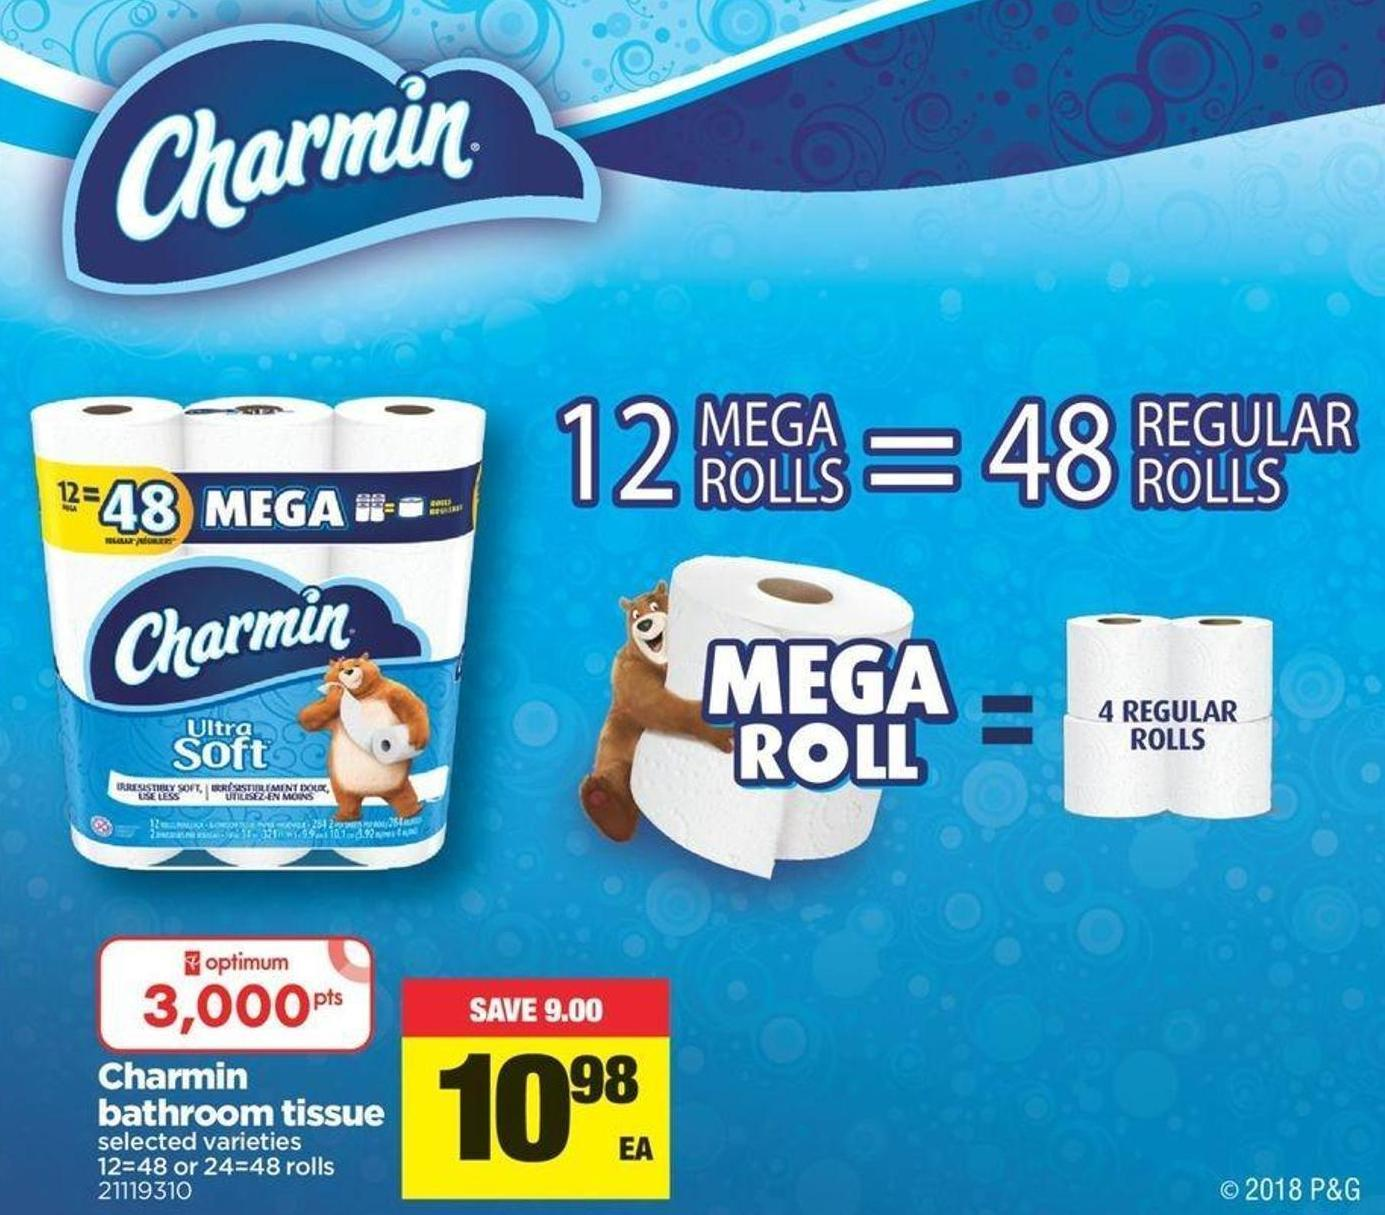 Charmin Bathroom Tissue - 12=48 or 24=48 Rolls